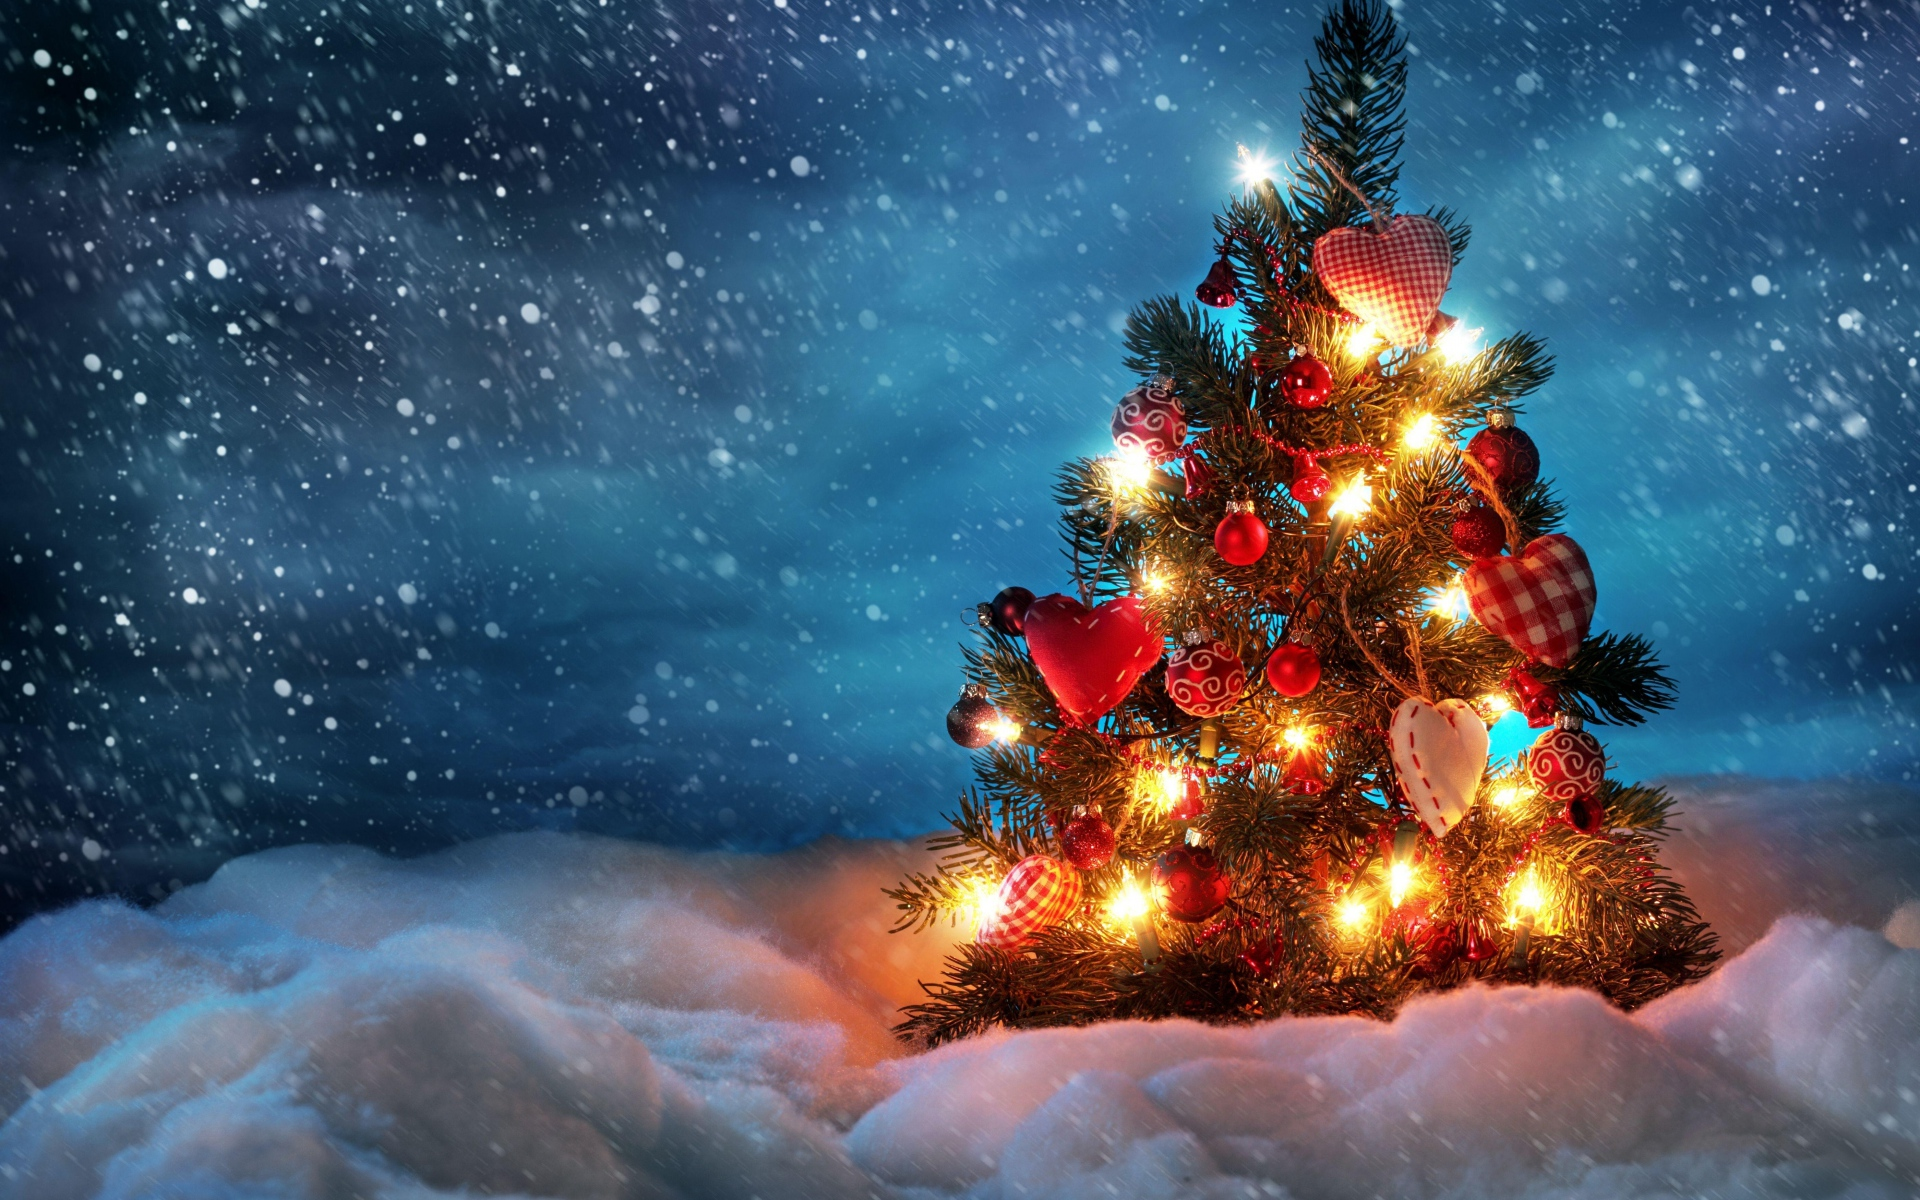 1920x1200 Wallpaper tree new year christmas snow holiday night 1920x1200